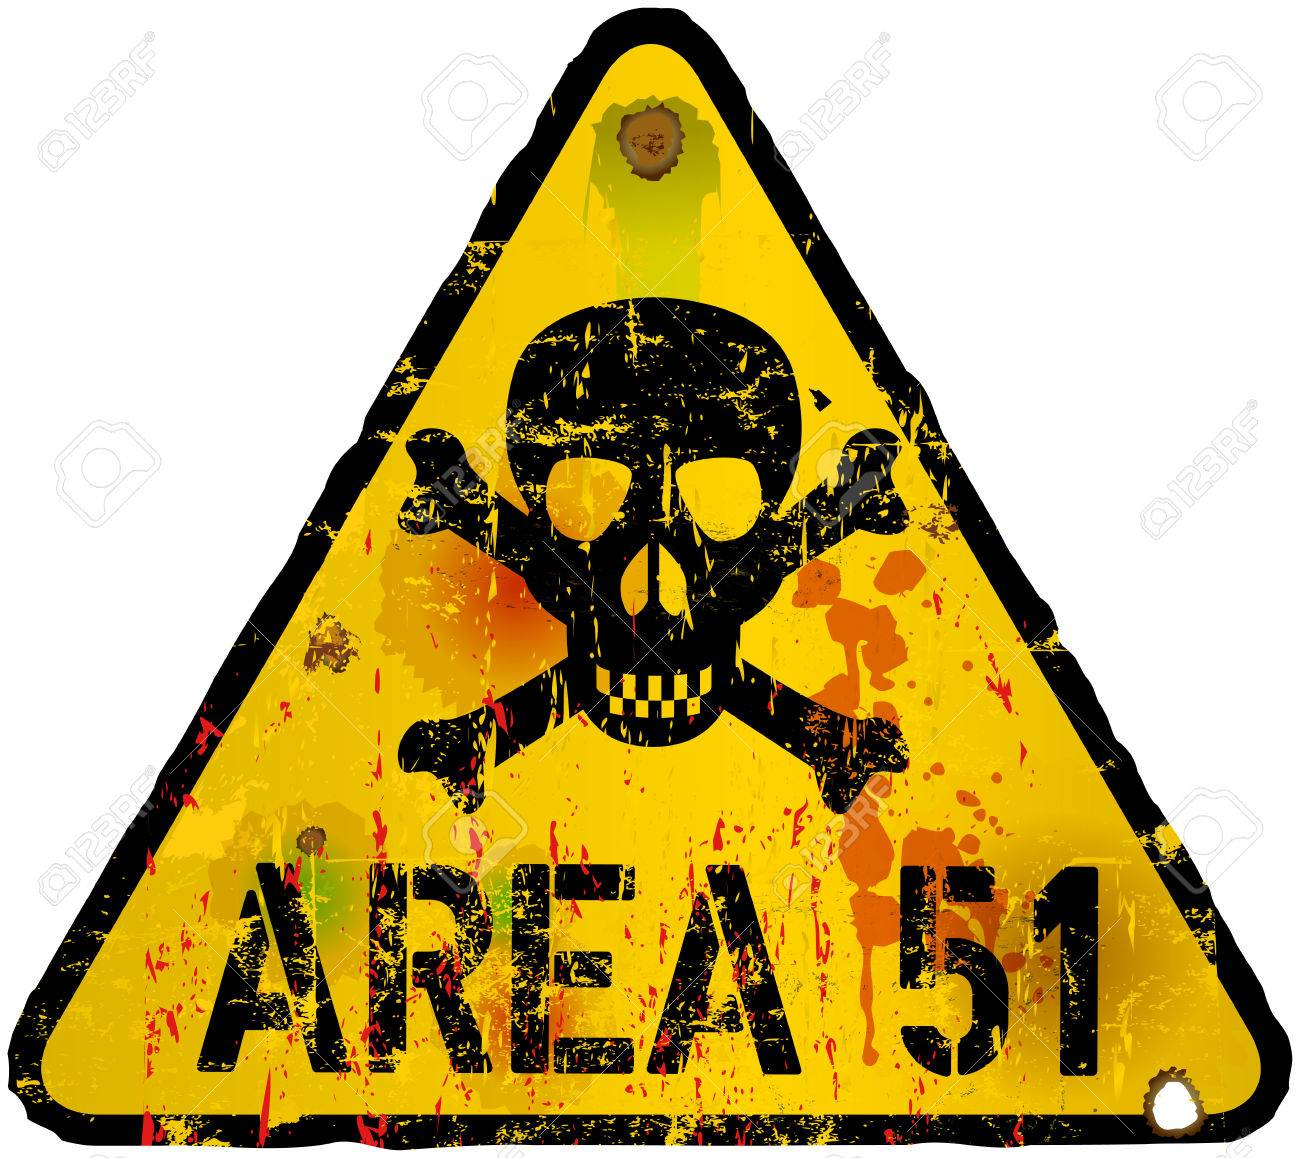 Image result for area 51 banner